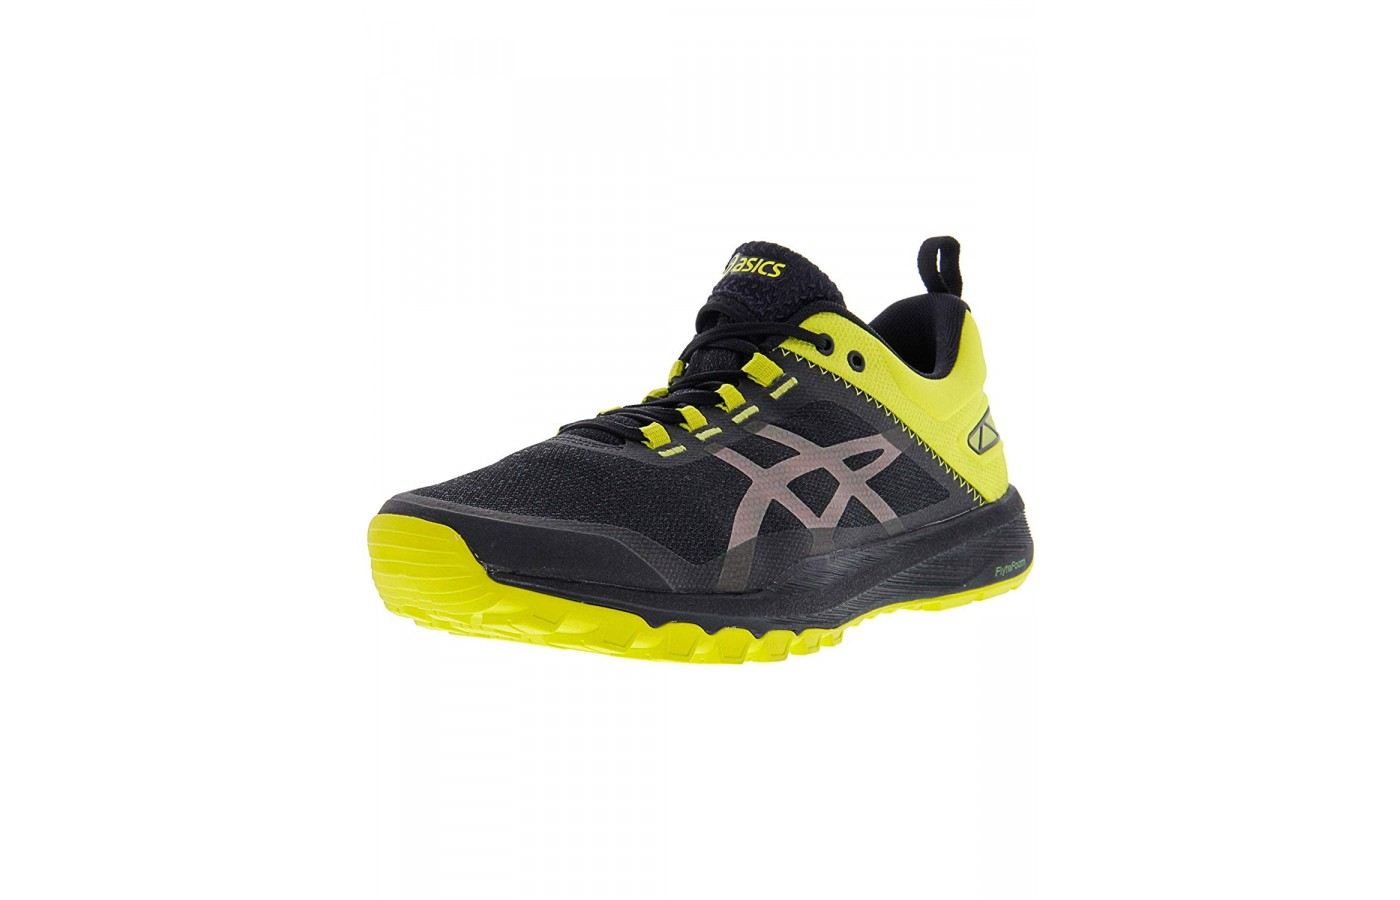 The Gecko XT shoes are well-rounded shoes that are among the better shoes for everyday use.